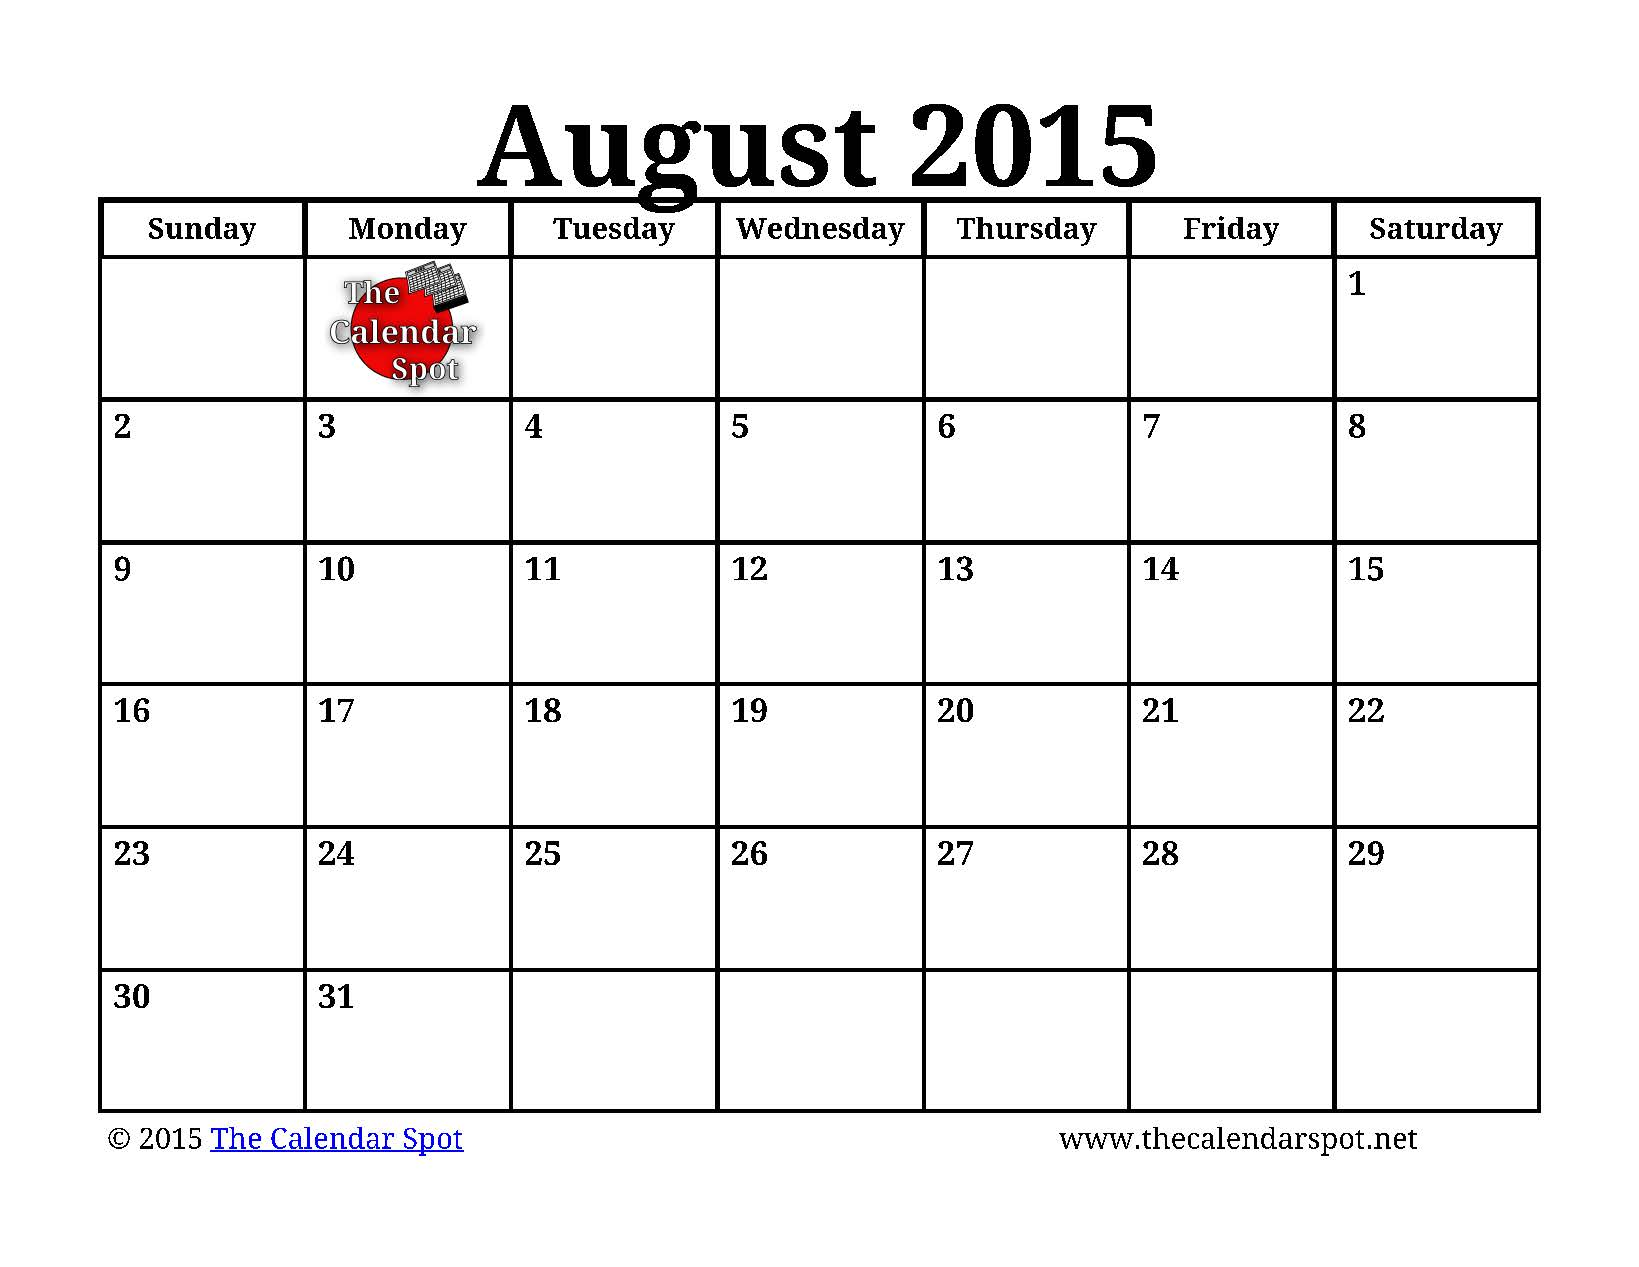 Monthly Calendar August Printable : Related keywords suggestions for monthly calendar august